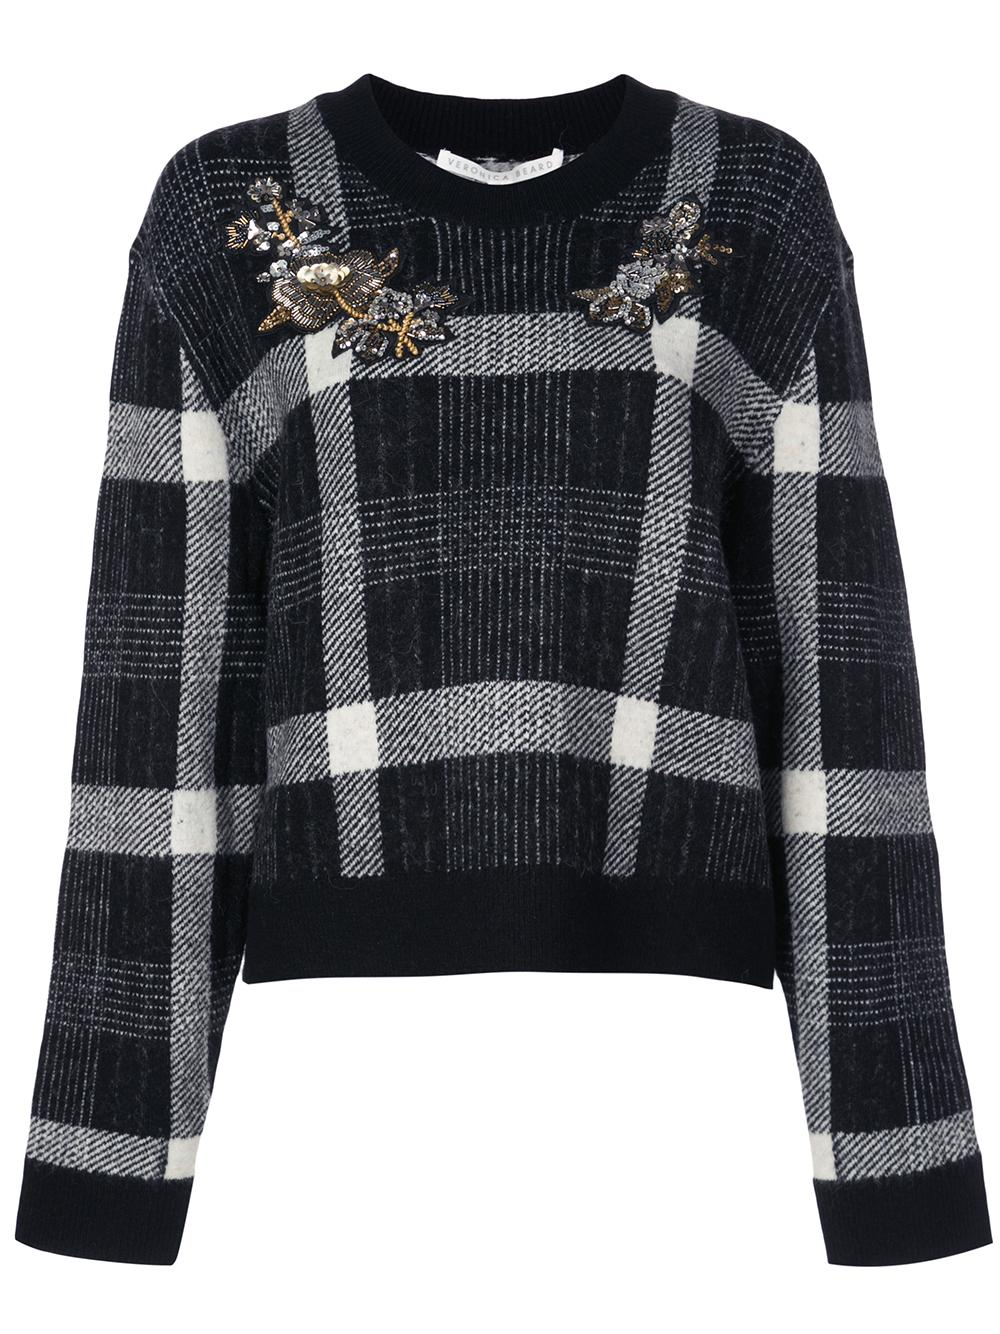 Deana Plaid Sweater With Embroidery Item # 1908KN40109340